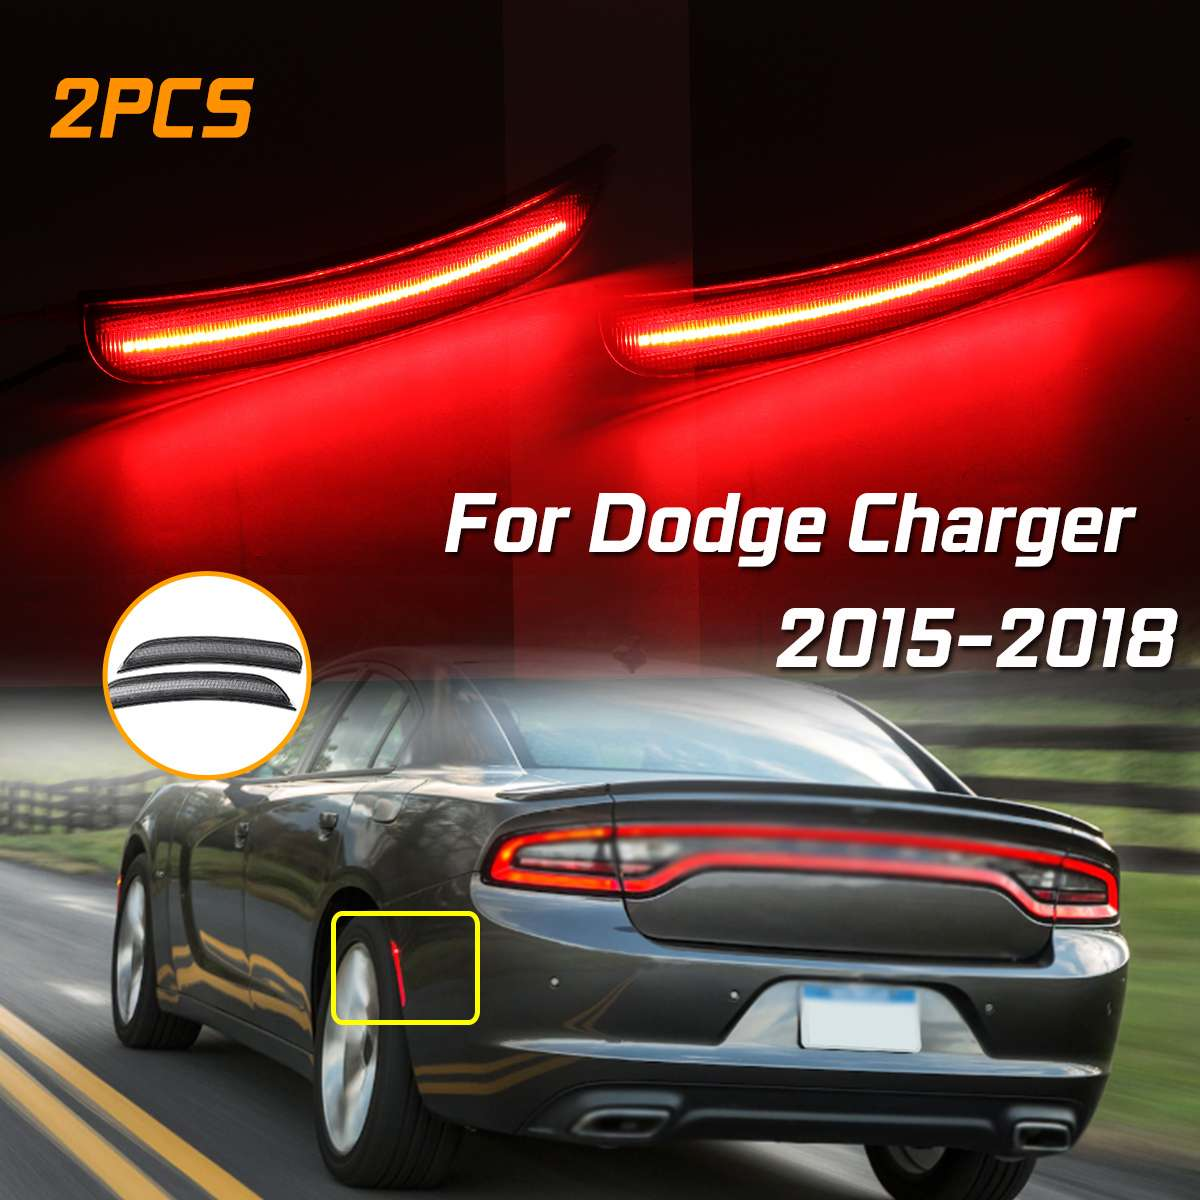 1 Set Front / Rear Side Marker Lamps With Red / Amber LED Lights Turn Signal Light For DODGE CHARGER 2015 2016 2017 2018